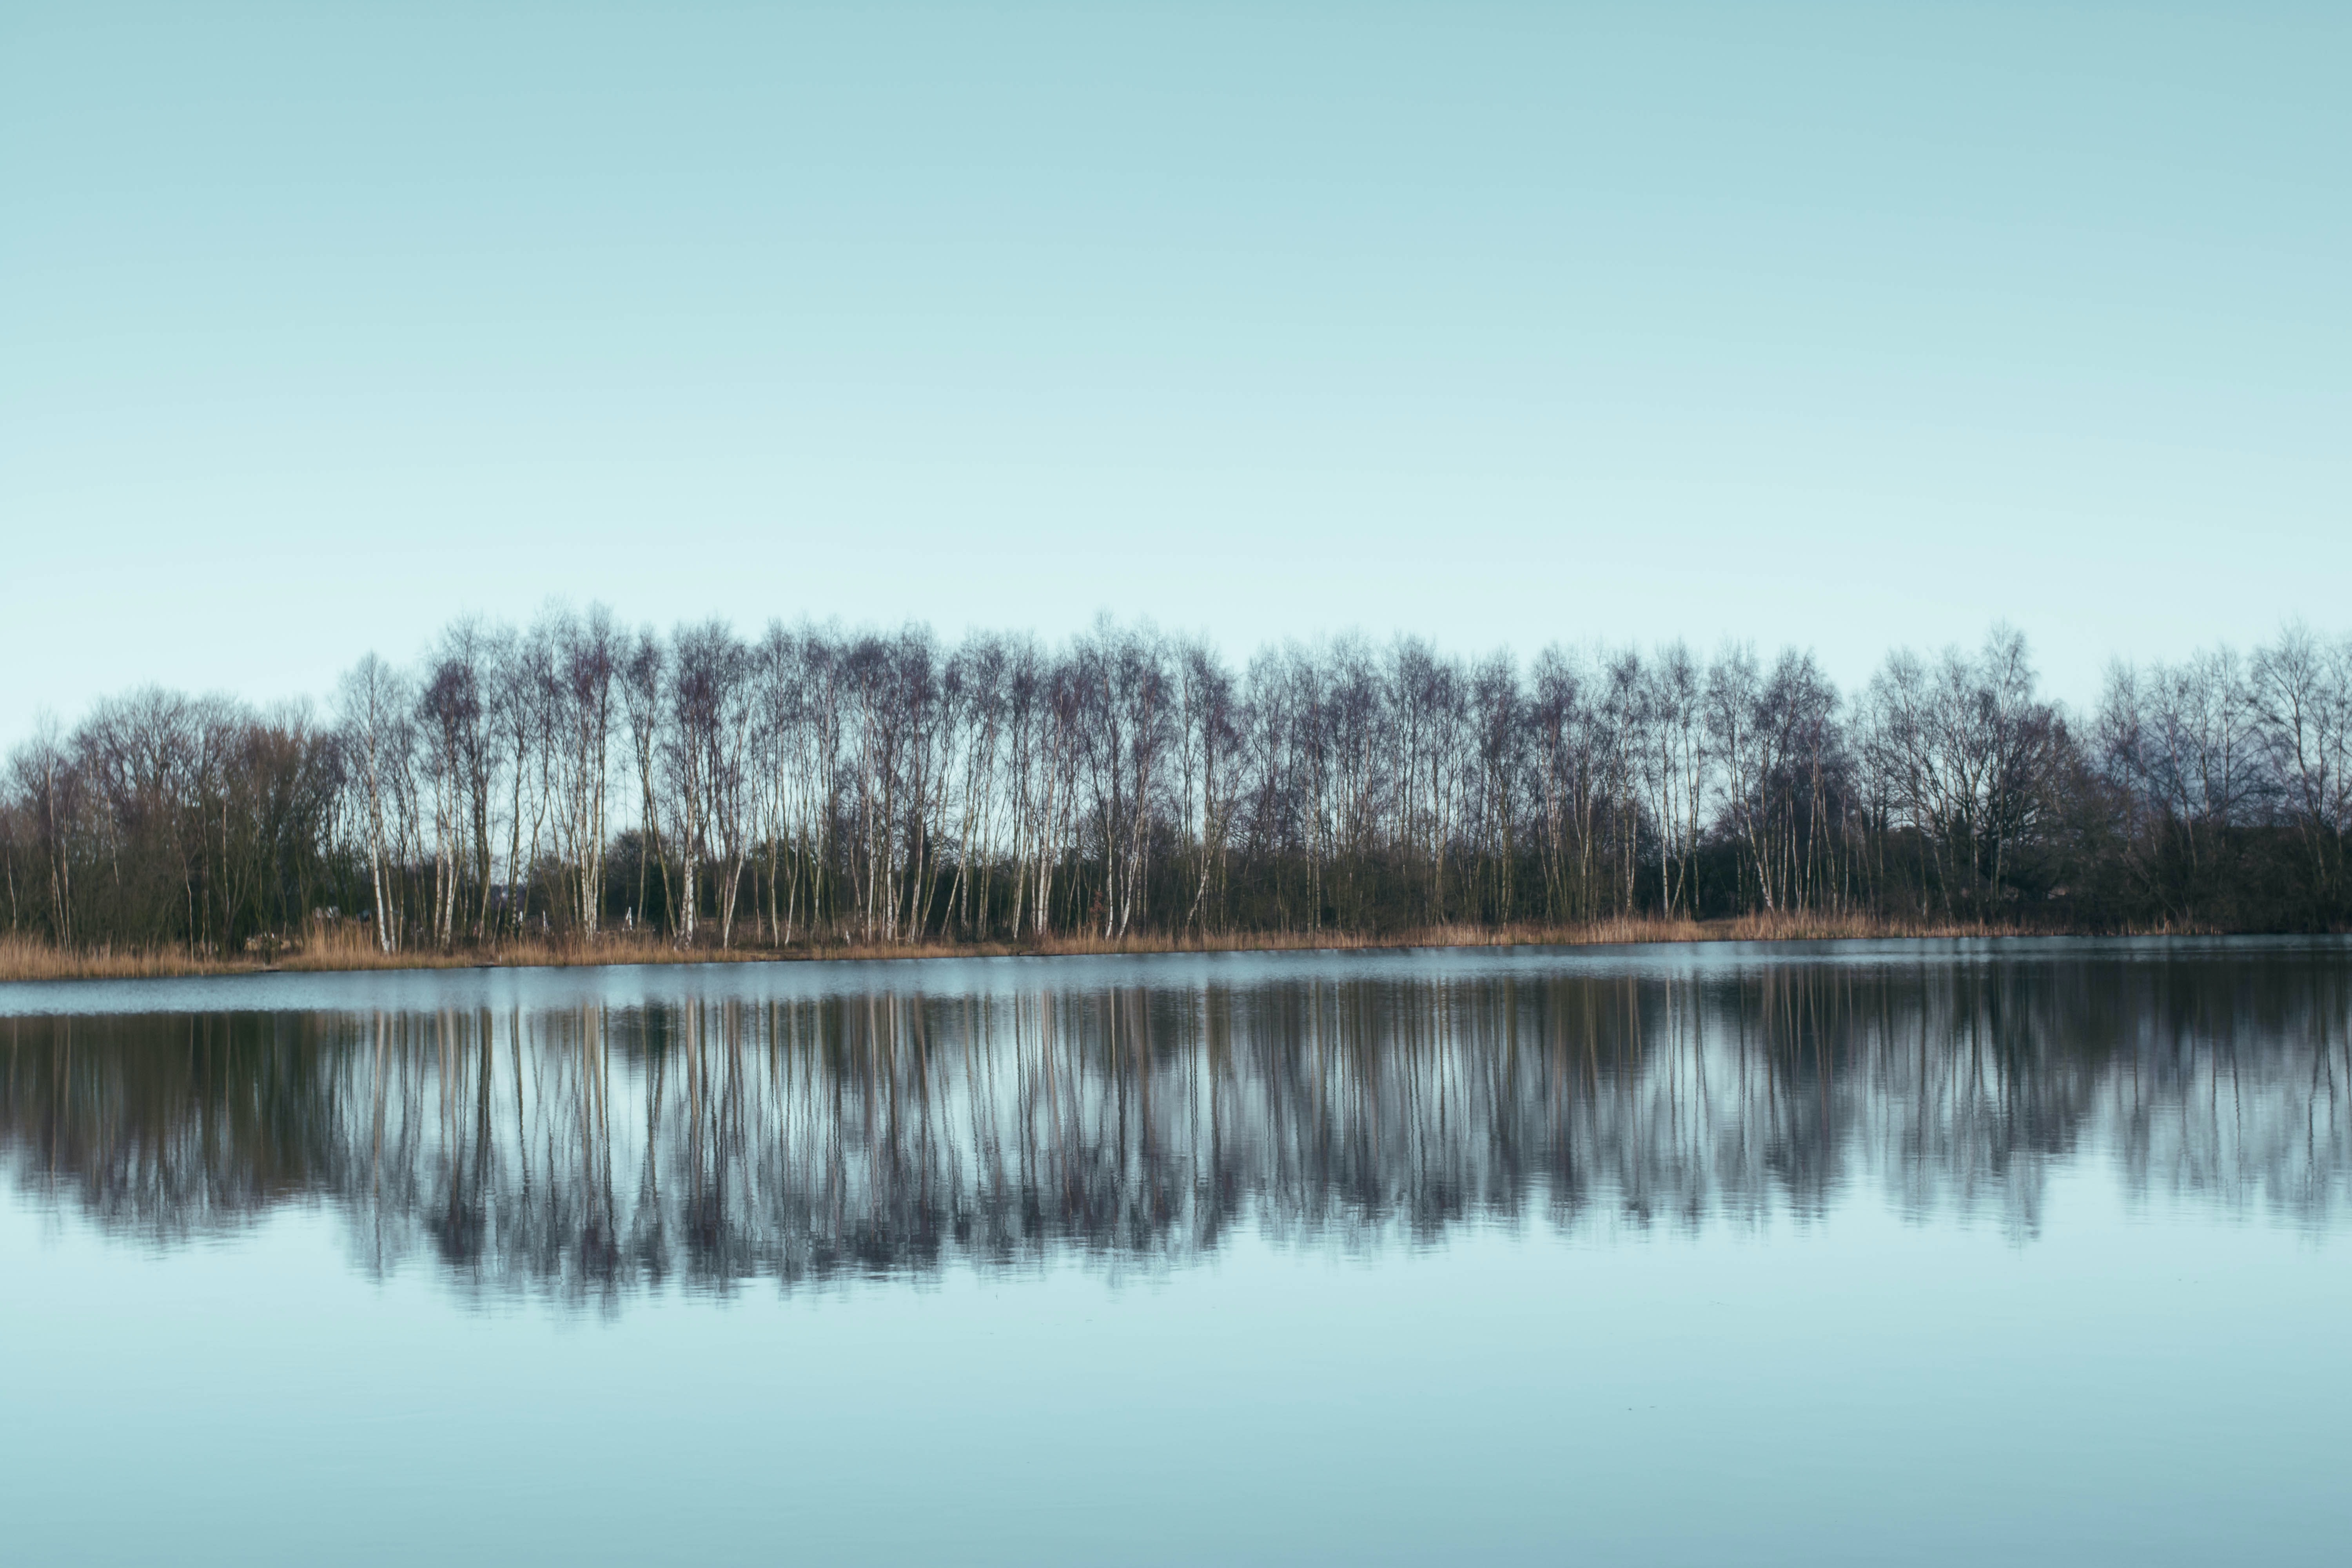 The sky and trees reflected in the lake in Scunthorpe